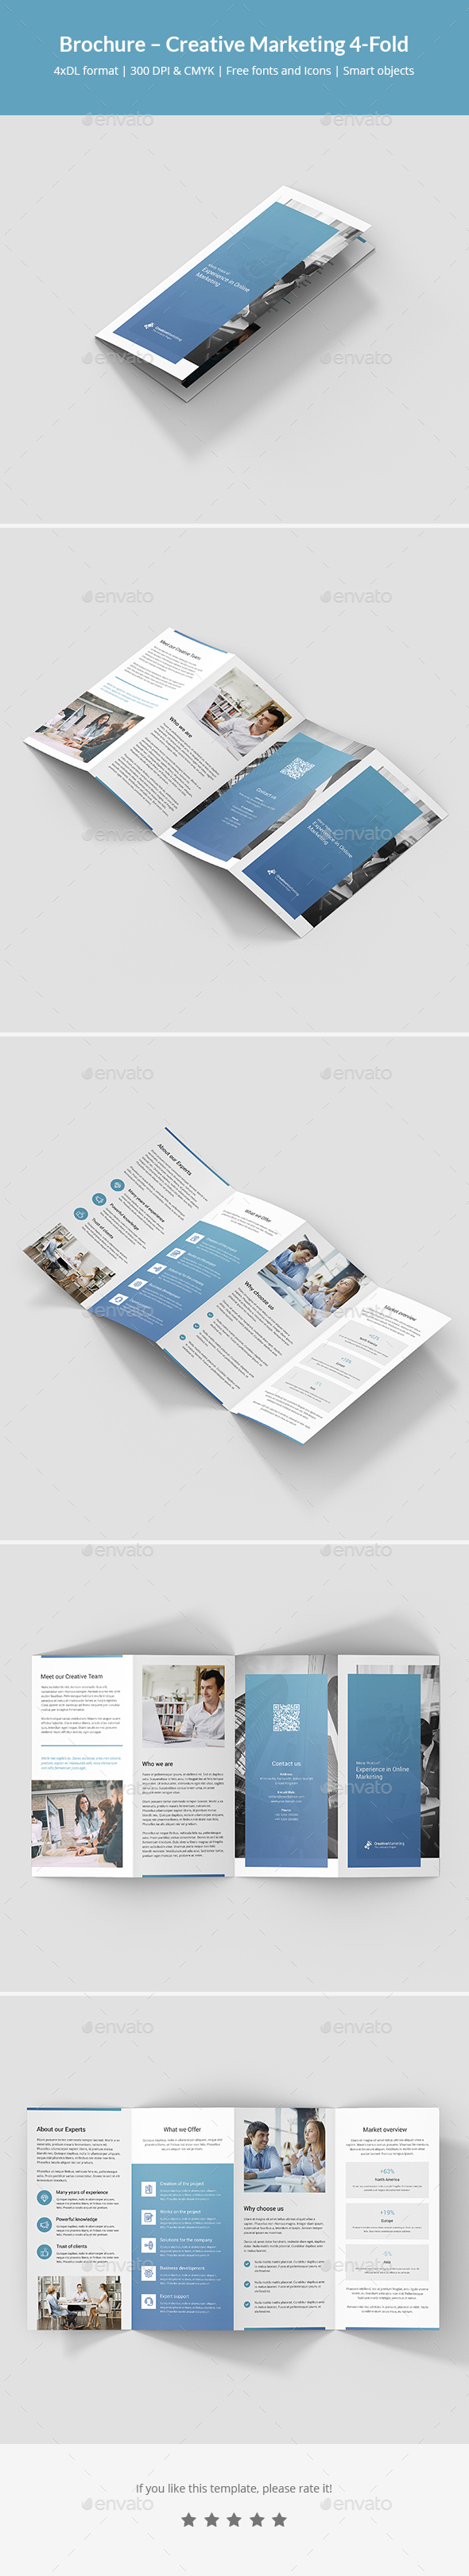 Brochure – Creative Marketing 4-Fold - Corporate Brochures